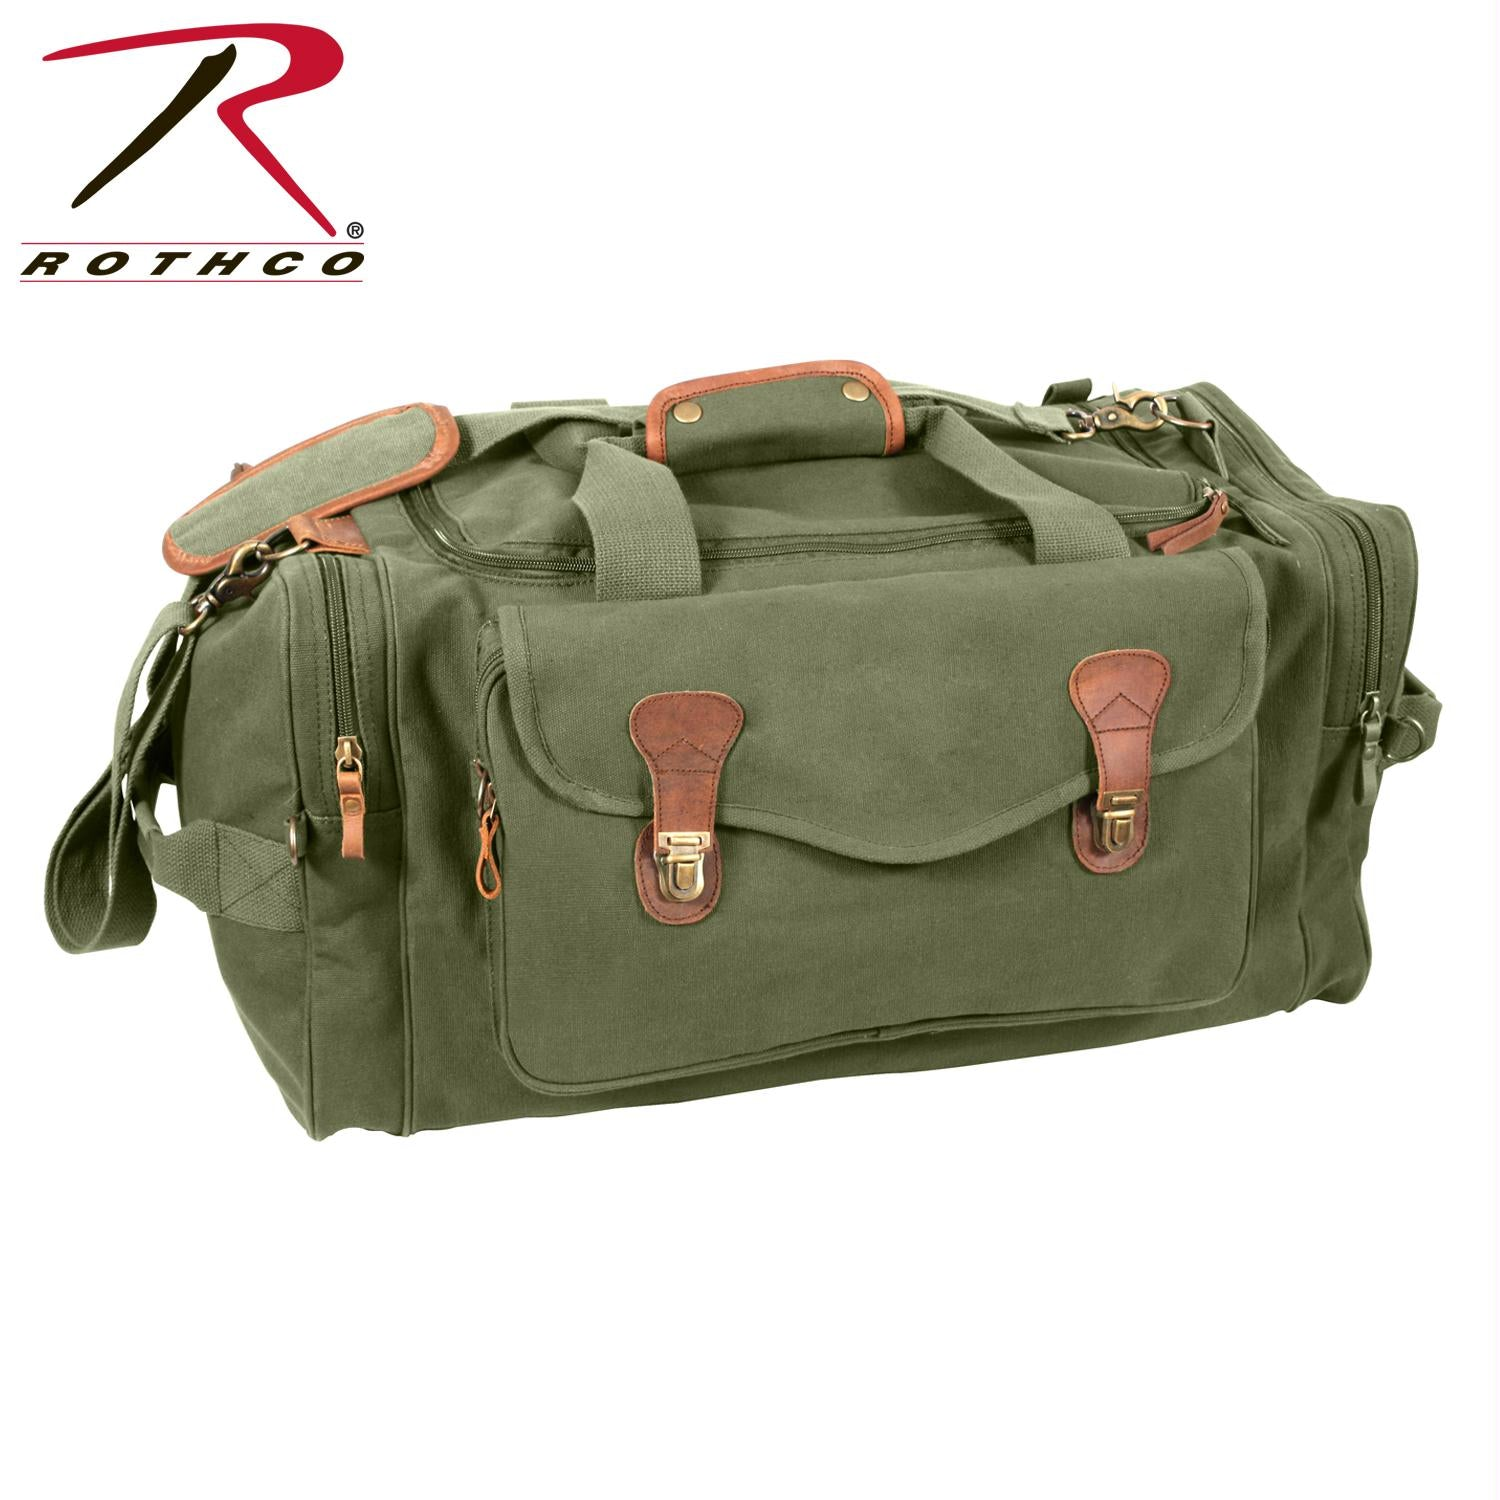 Rothco Canvas Long Weekend Bag - Olive Drab